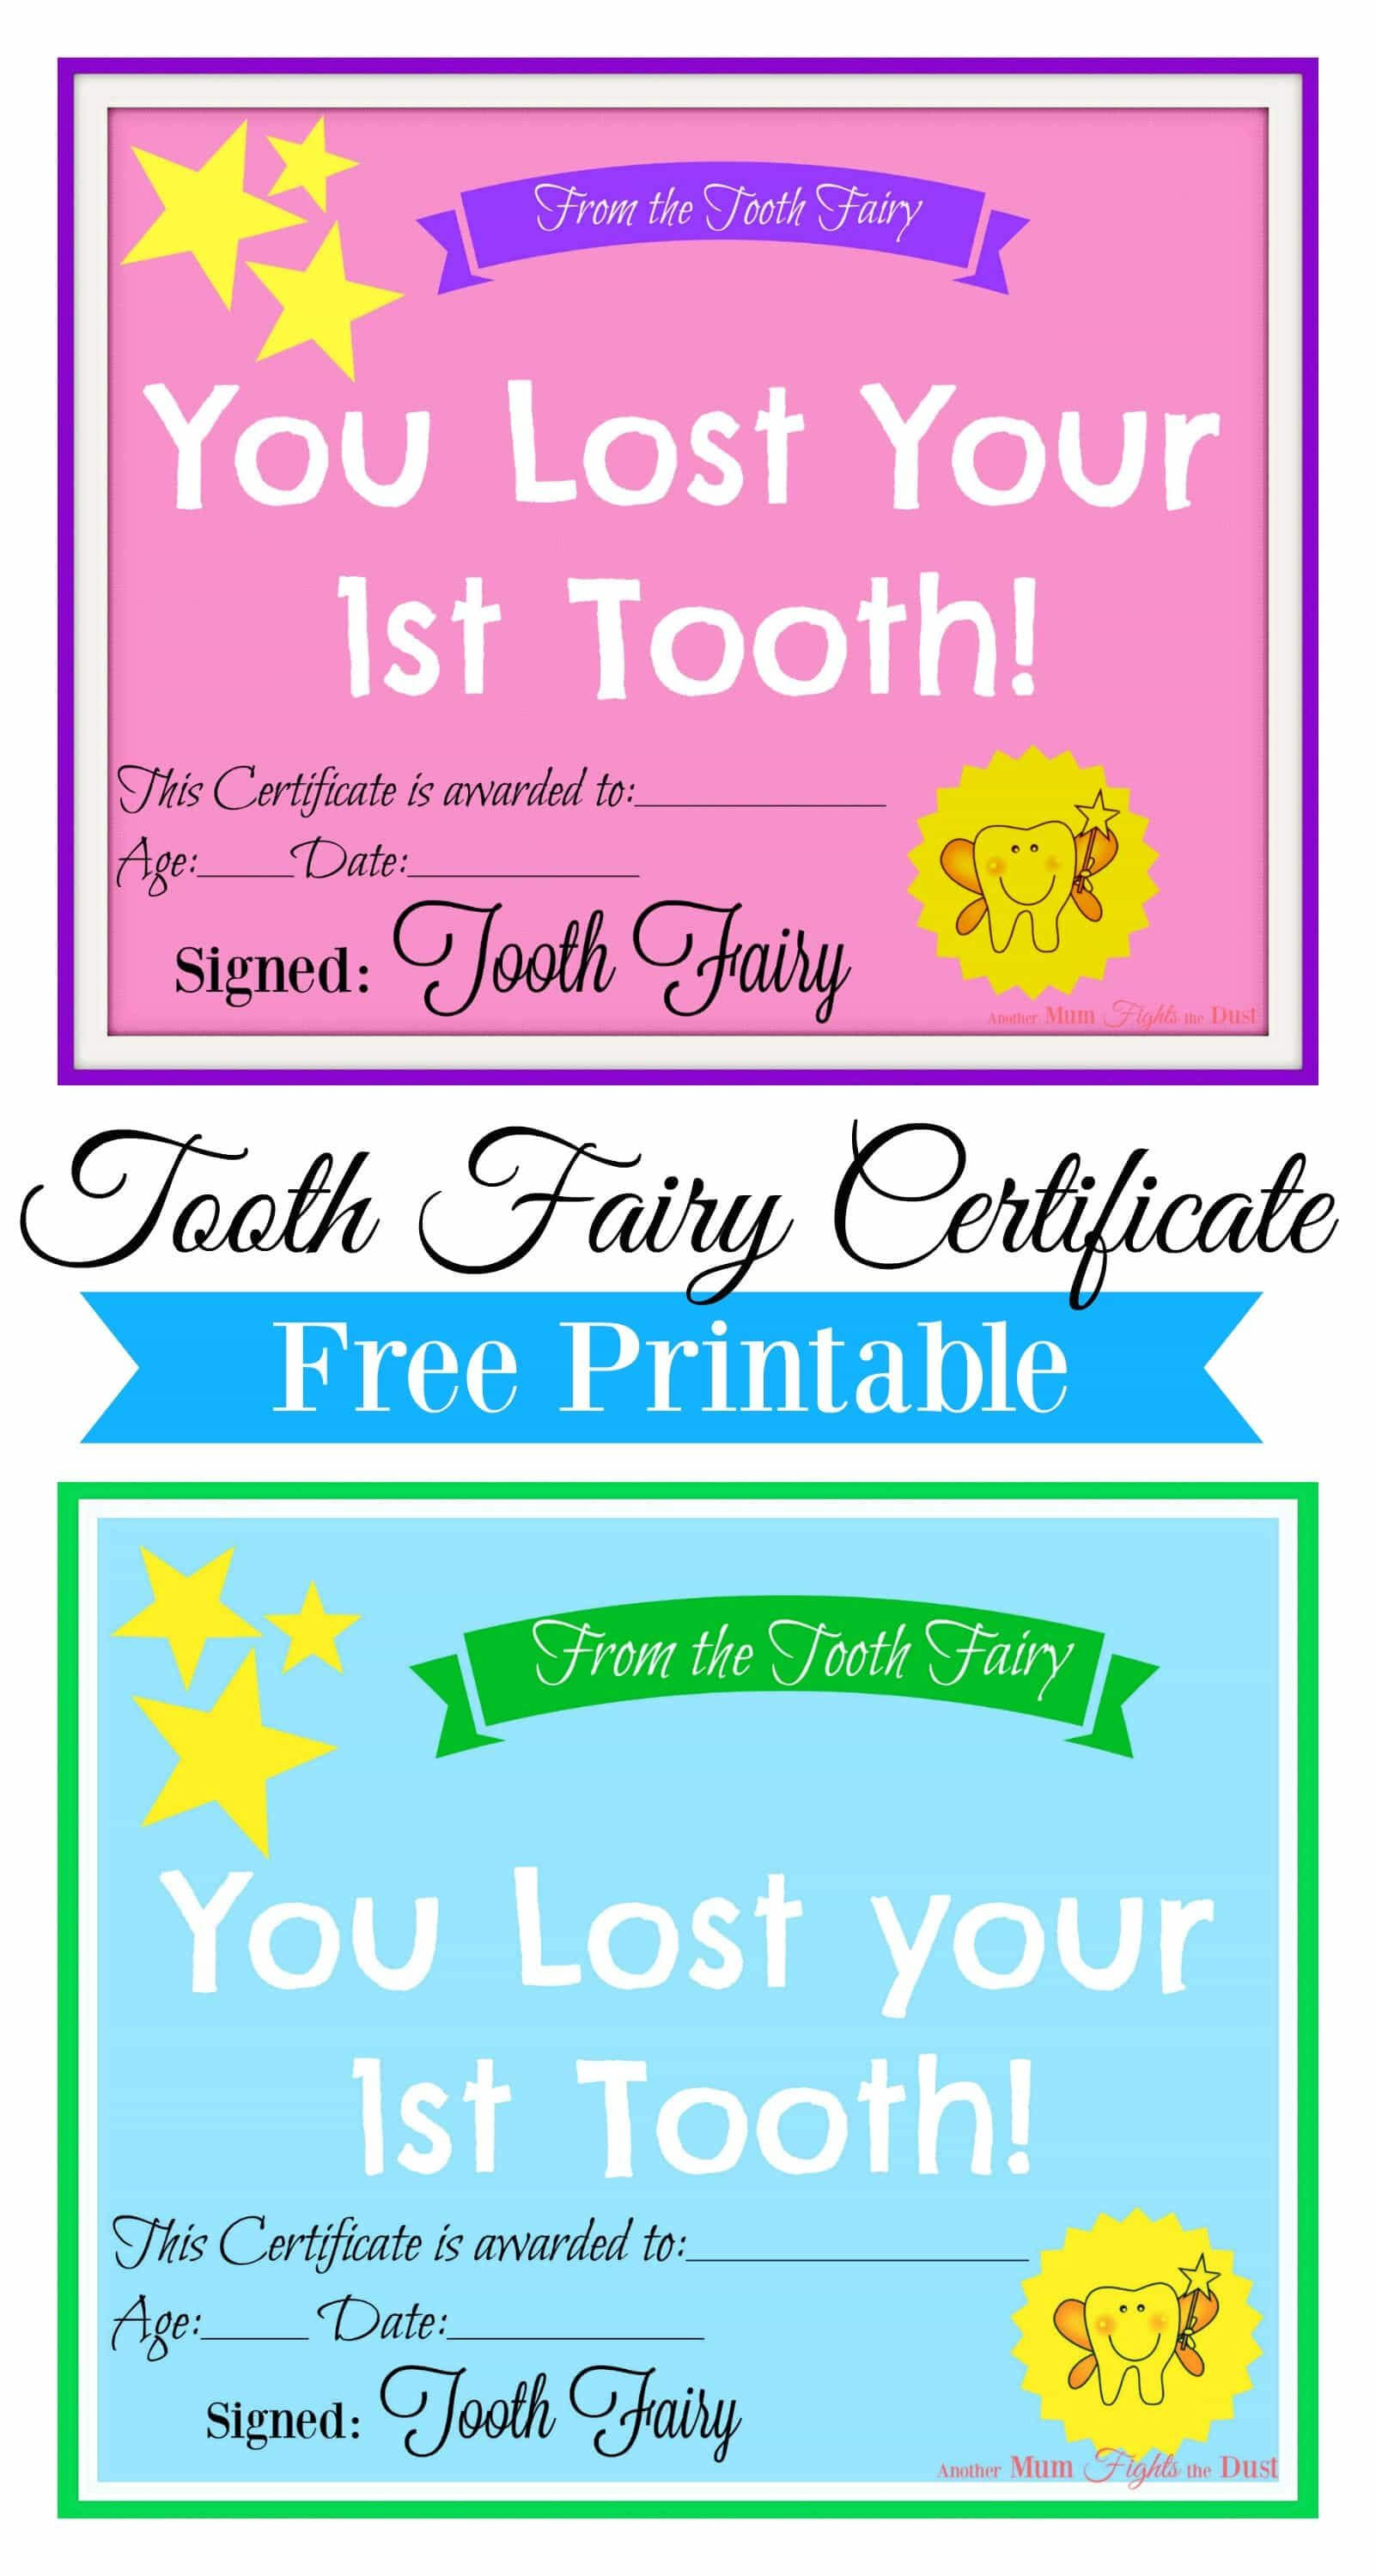 Free Printable Tooth Fairy Certificate | Tooth Fairy Ideas Intended For Tooth Fairy Certificate Template Free